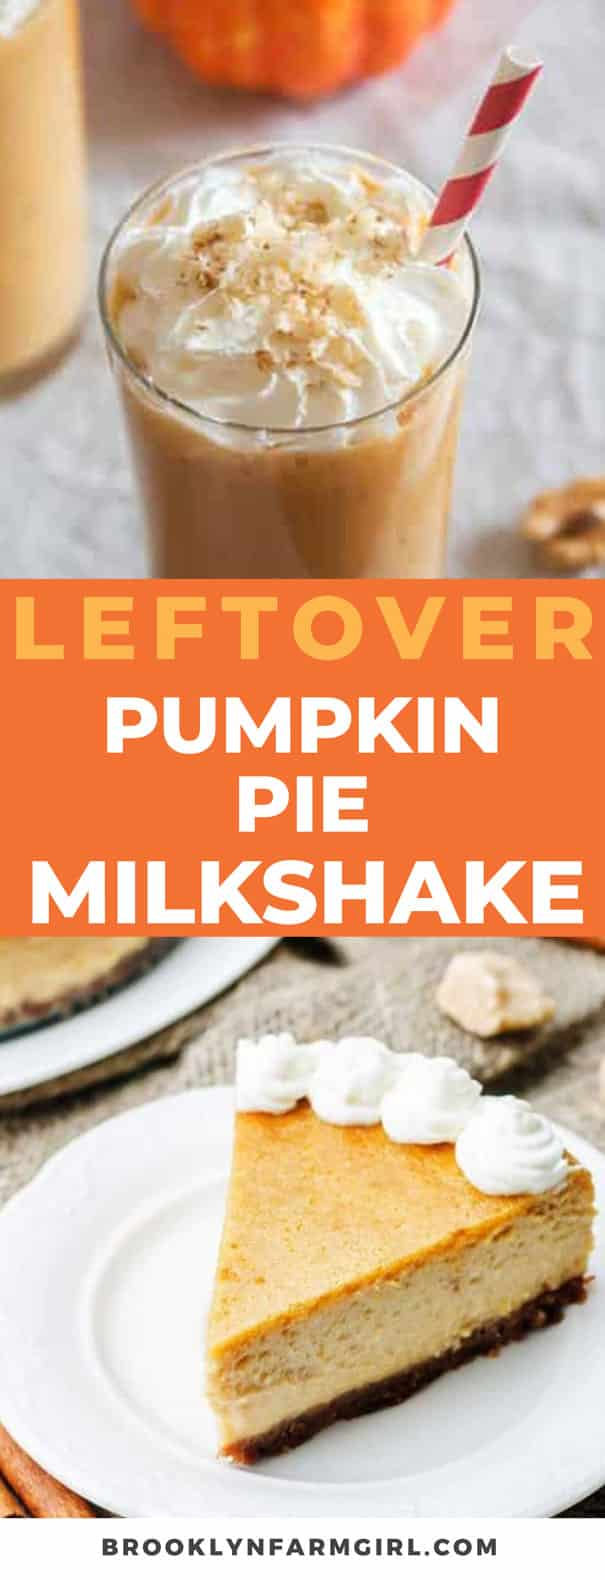 Easy Leftover PUMPKIN PIE Milkshake! This easy 4 ingredient milkshake recipe uses 1 slice of PUMPKIN PIE to make the BEST tasting pumpkin milkshake from Thanksgiving leftovers!